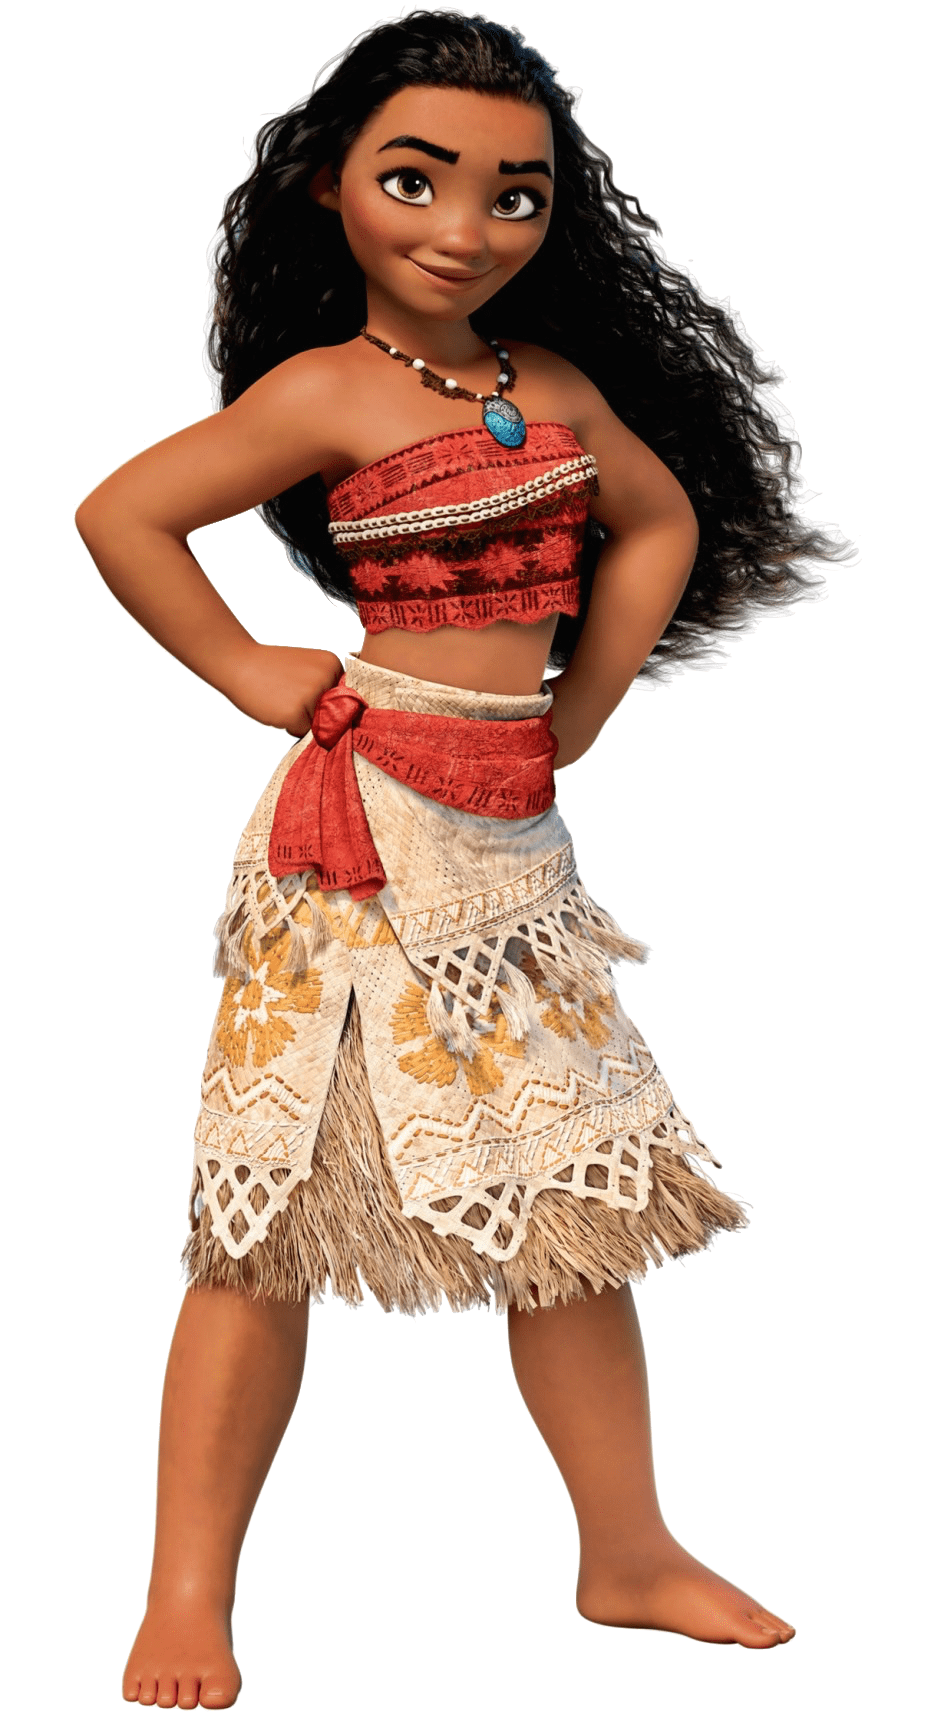 Moana Png Transparent.